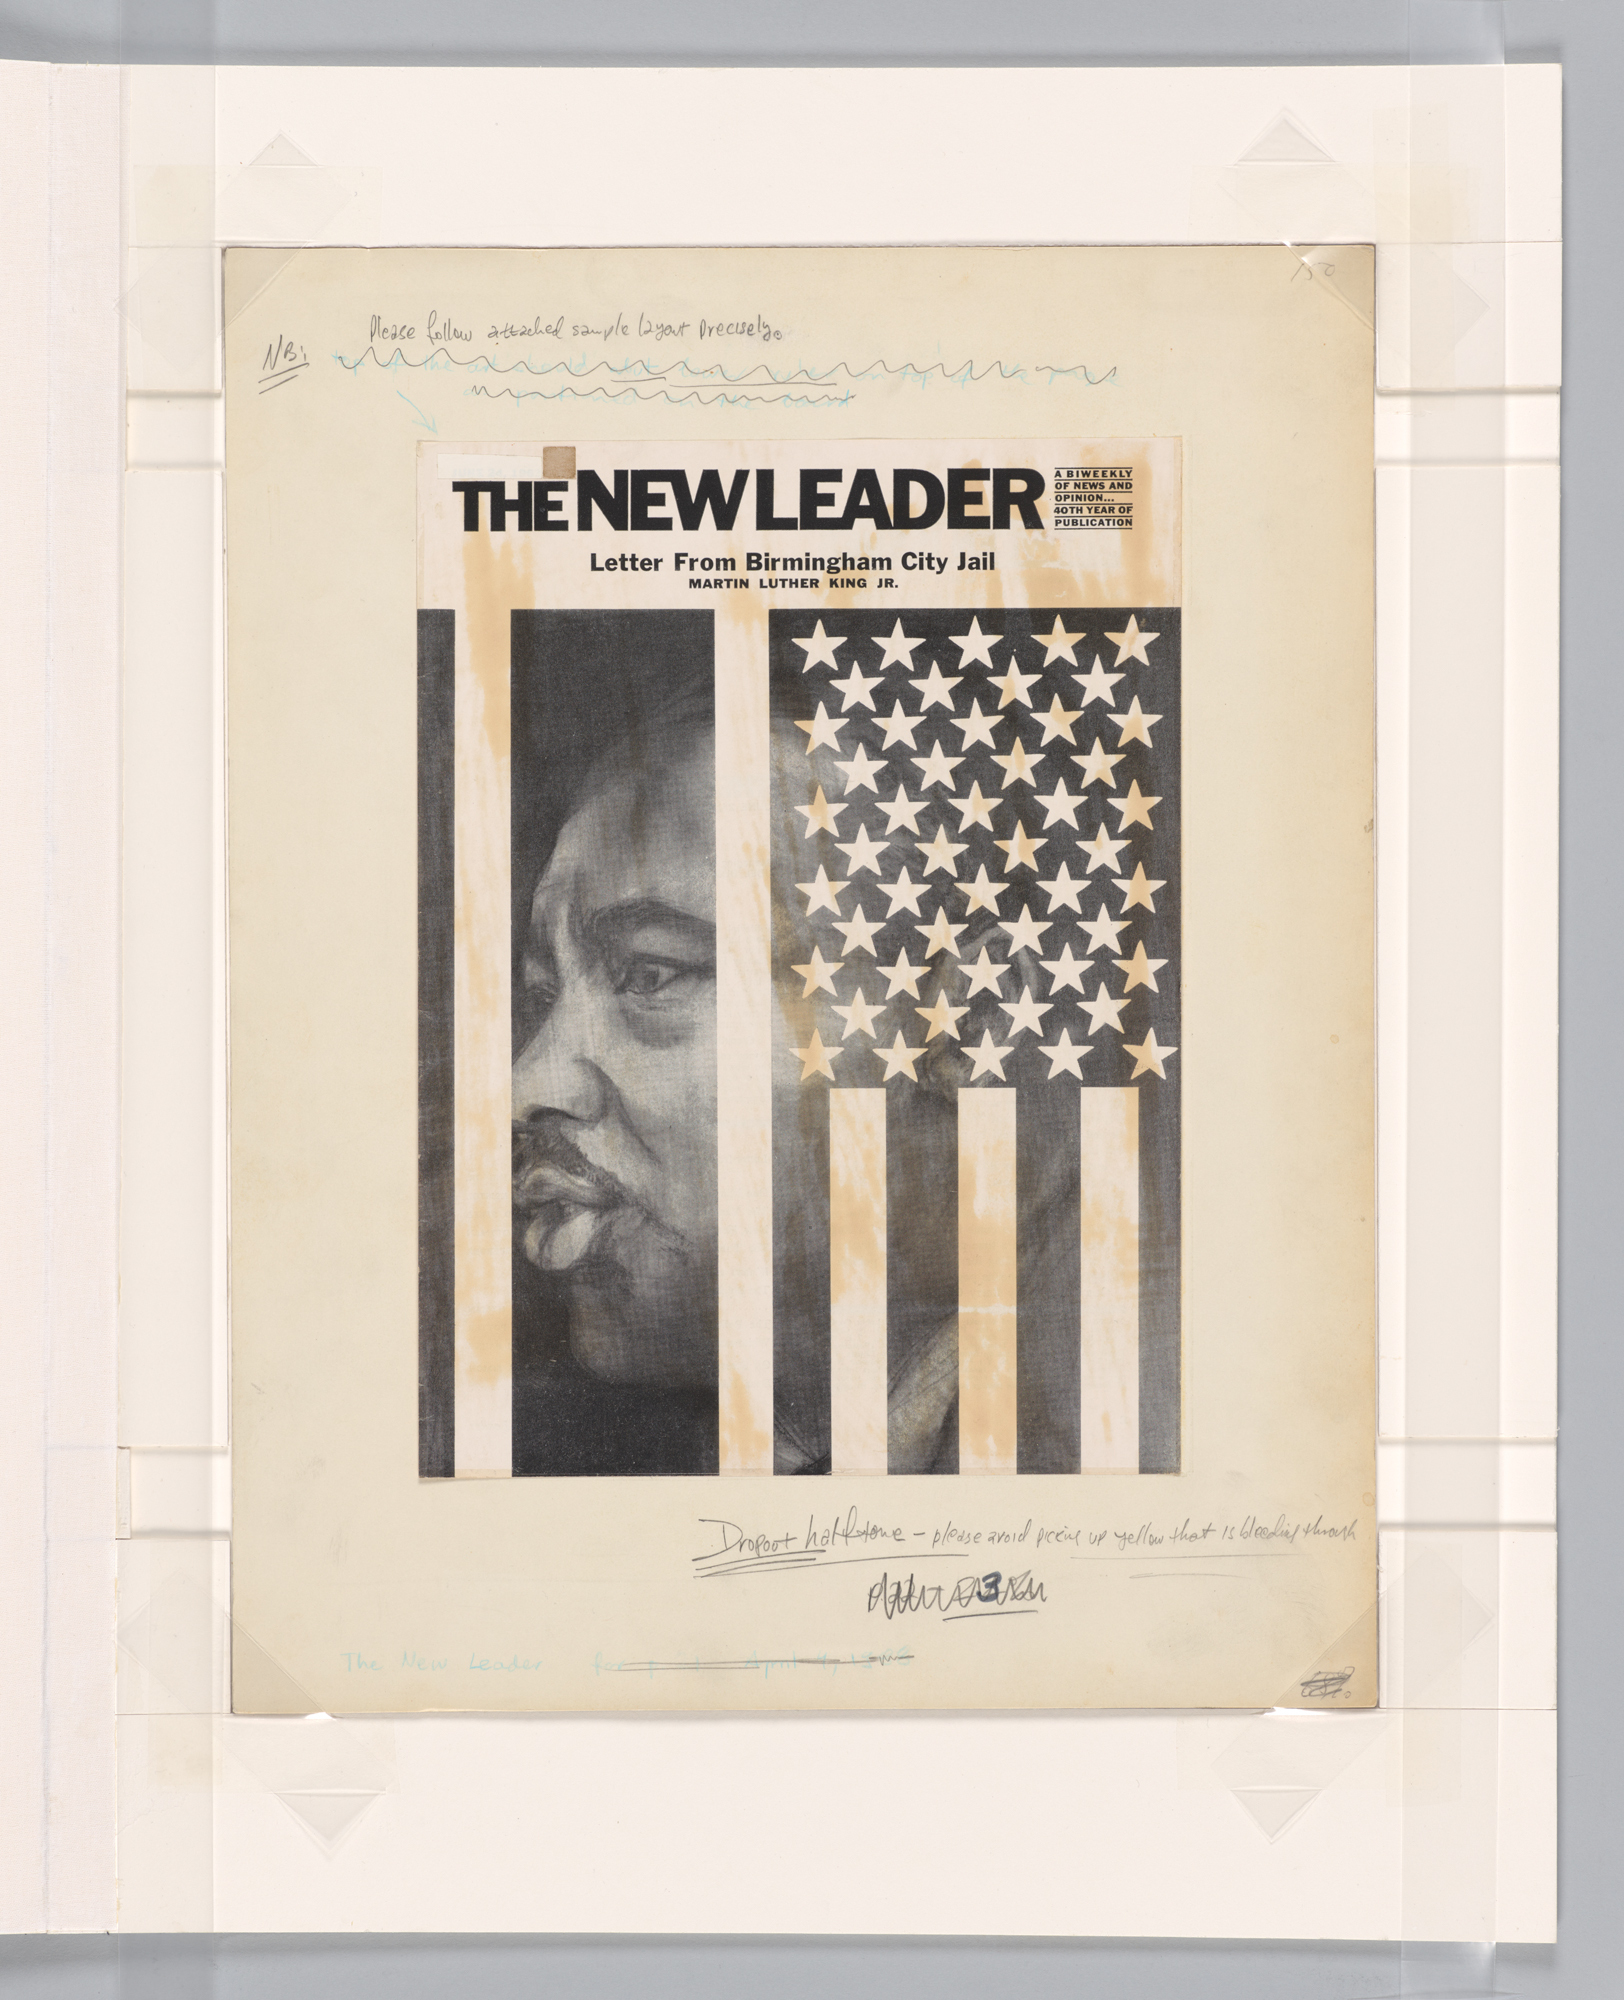 The New Leader, Cover Design, Letter From Birmingham City Jail